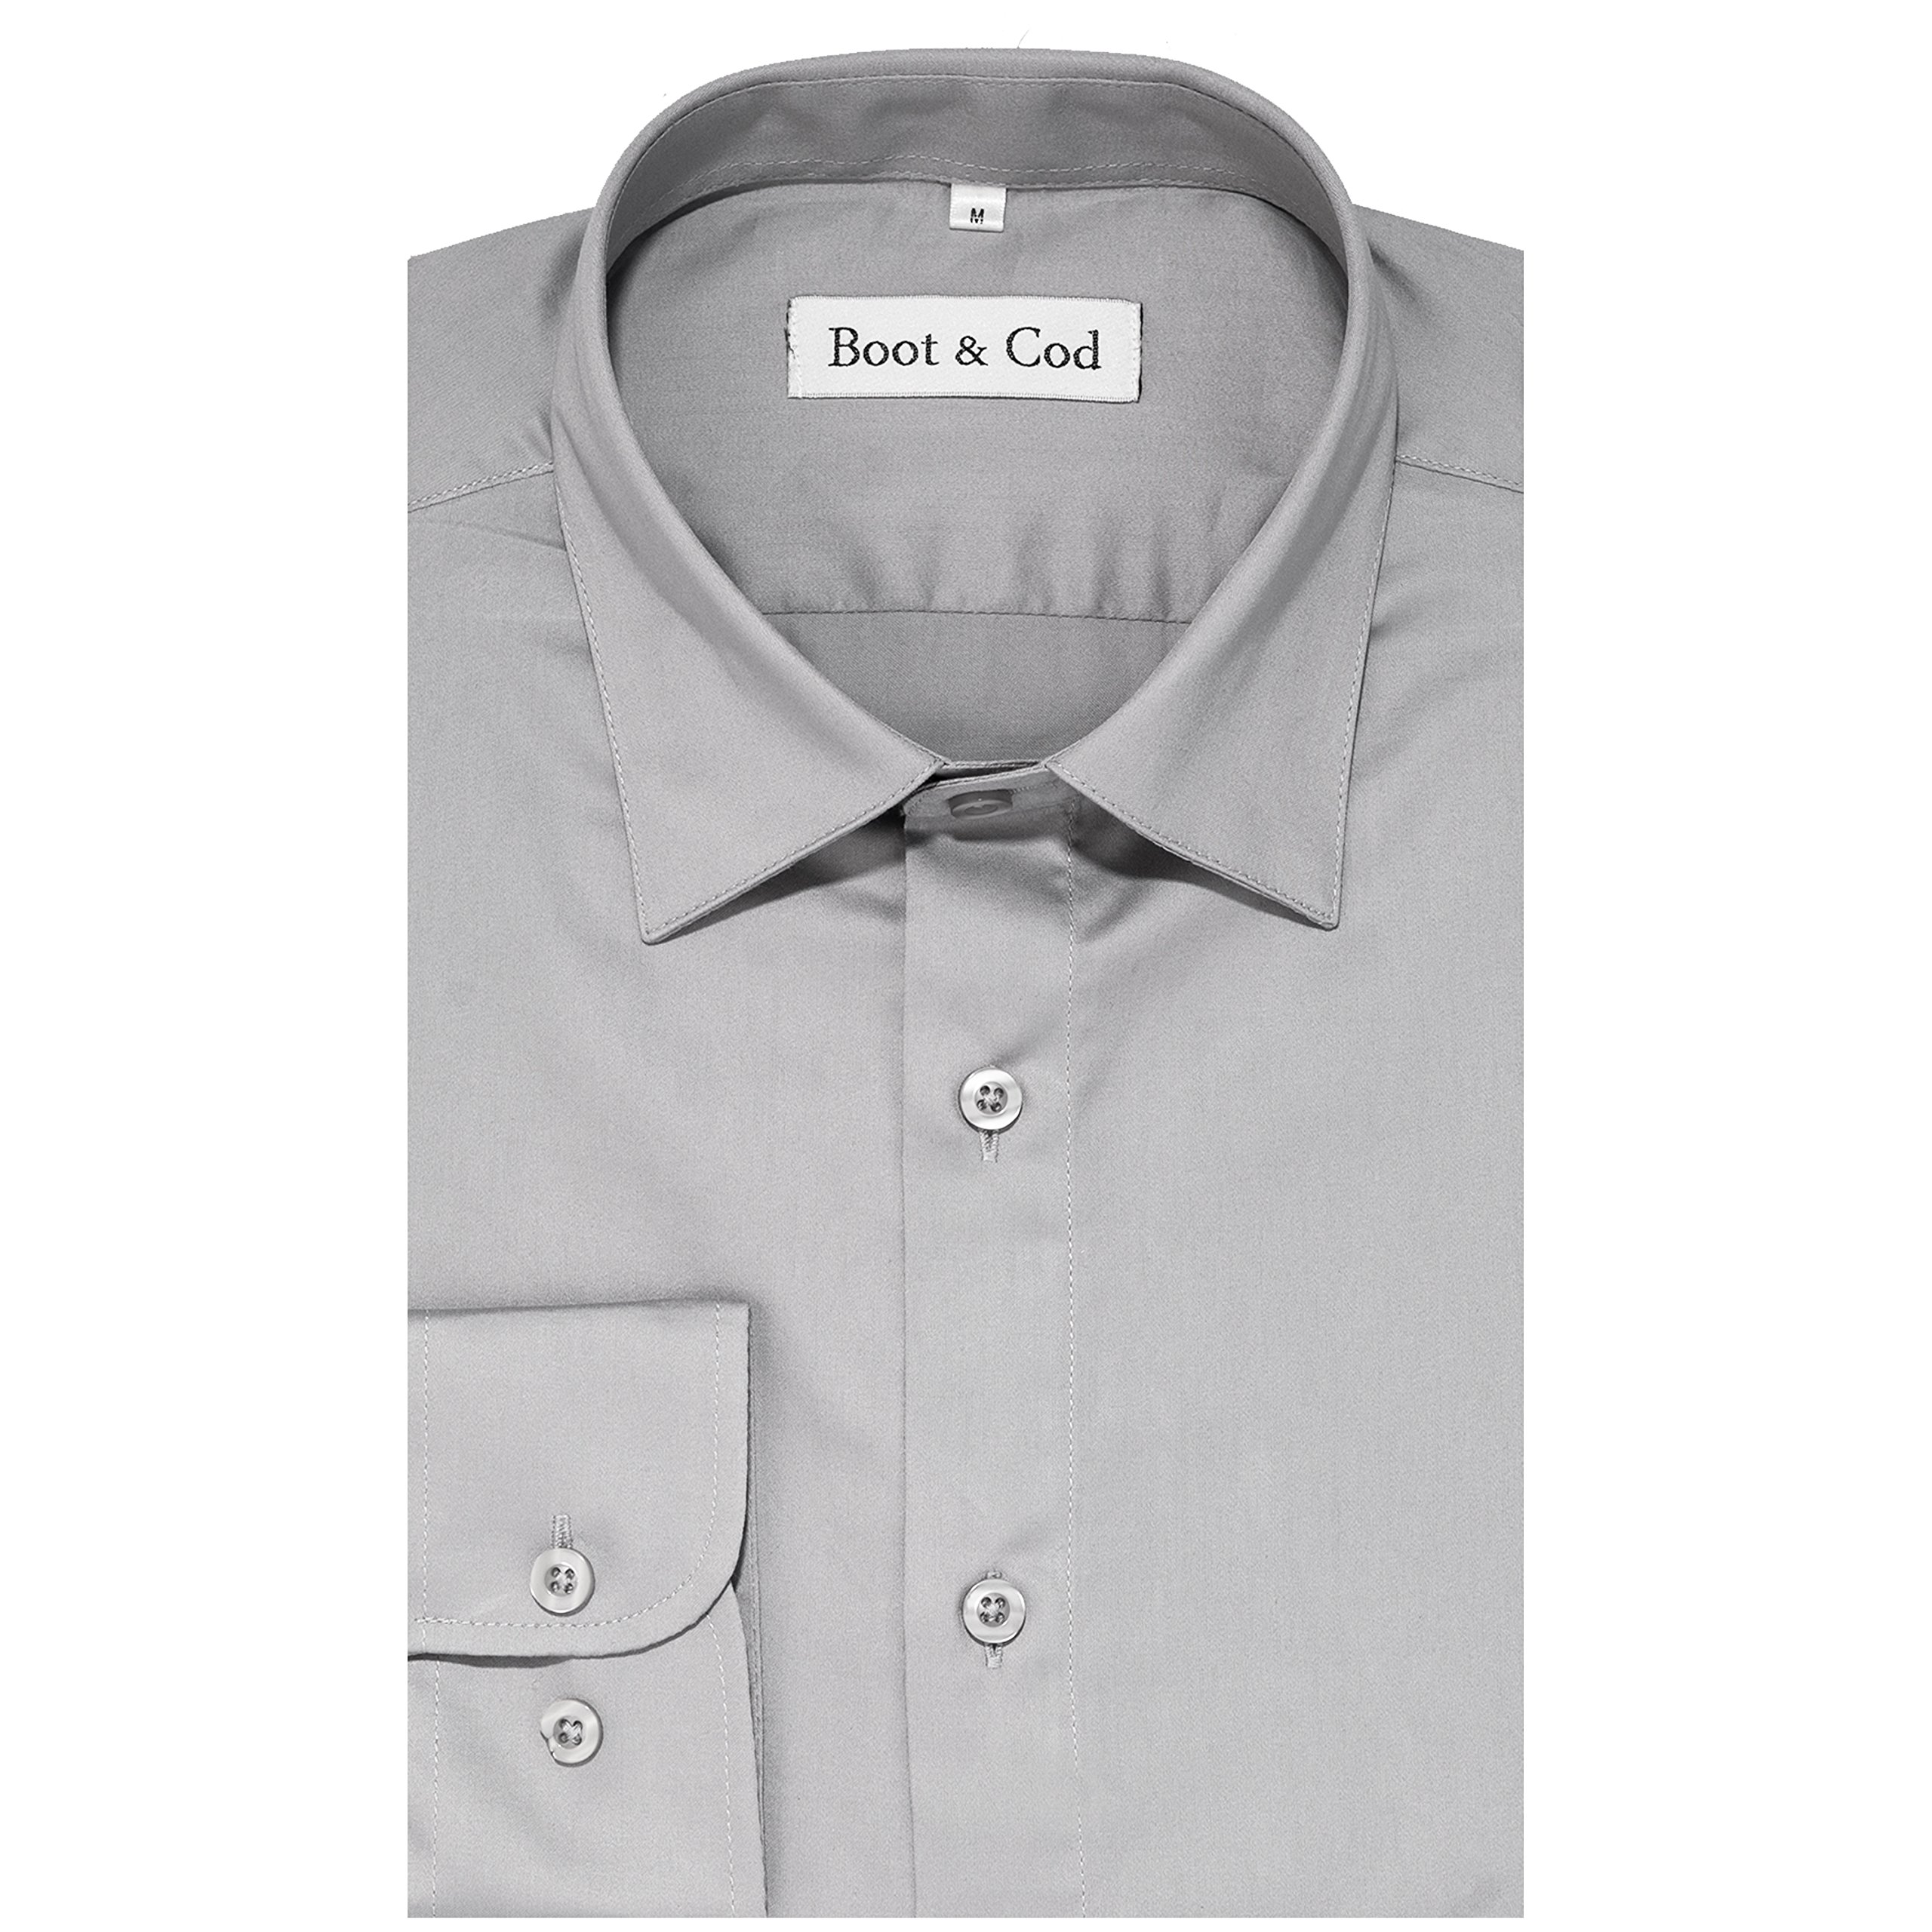 Boot & Cod Men's Charcoal Gray Fitted Long Sleeve Button Down Dress Shirt - M